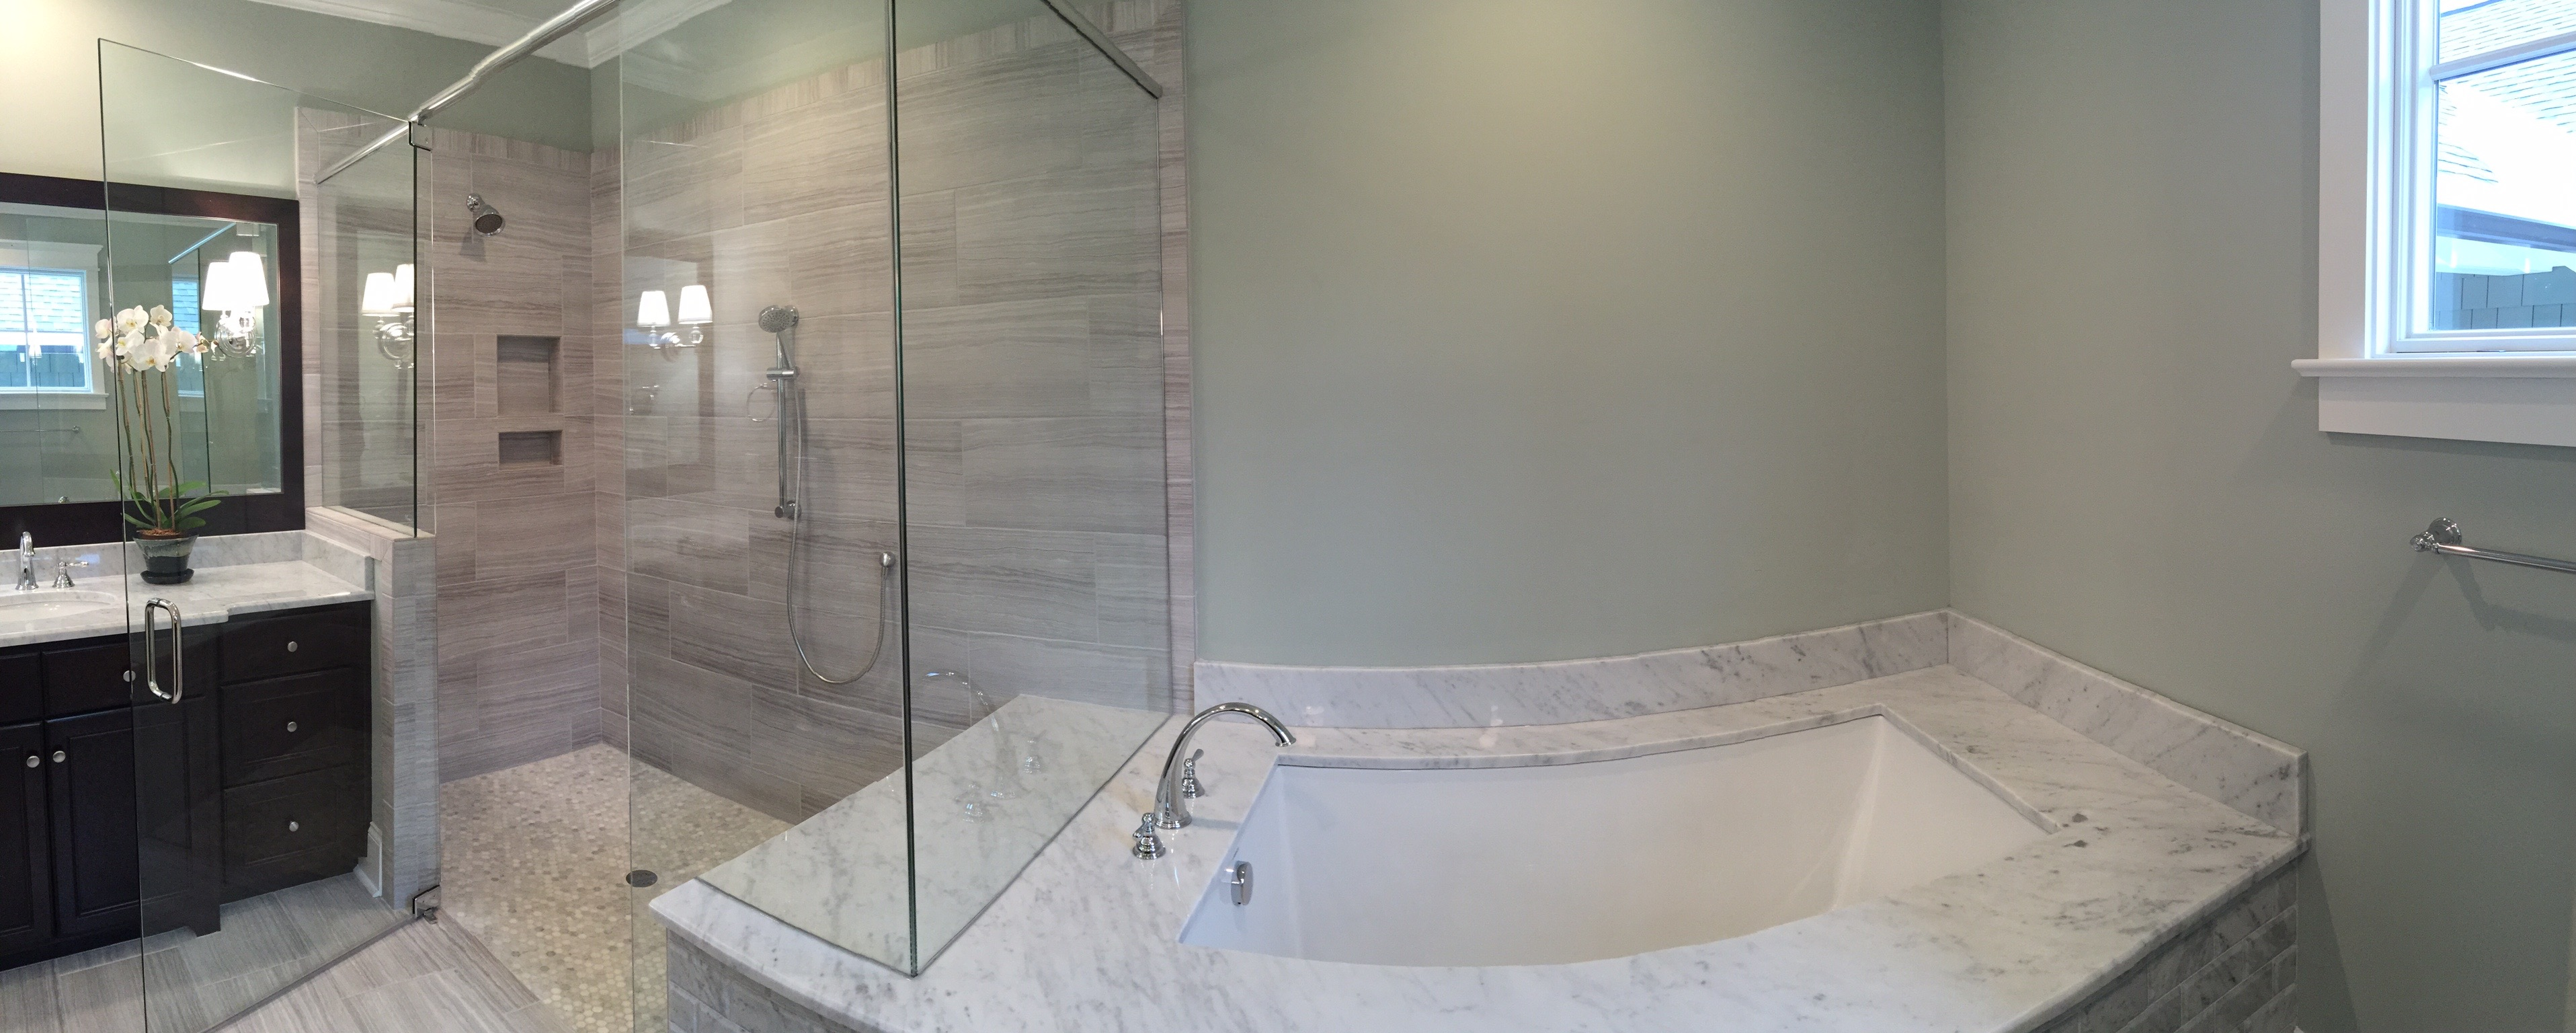 Master Bathtub Wide Angle